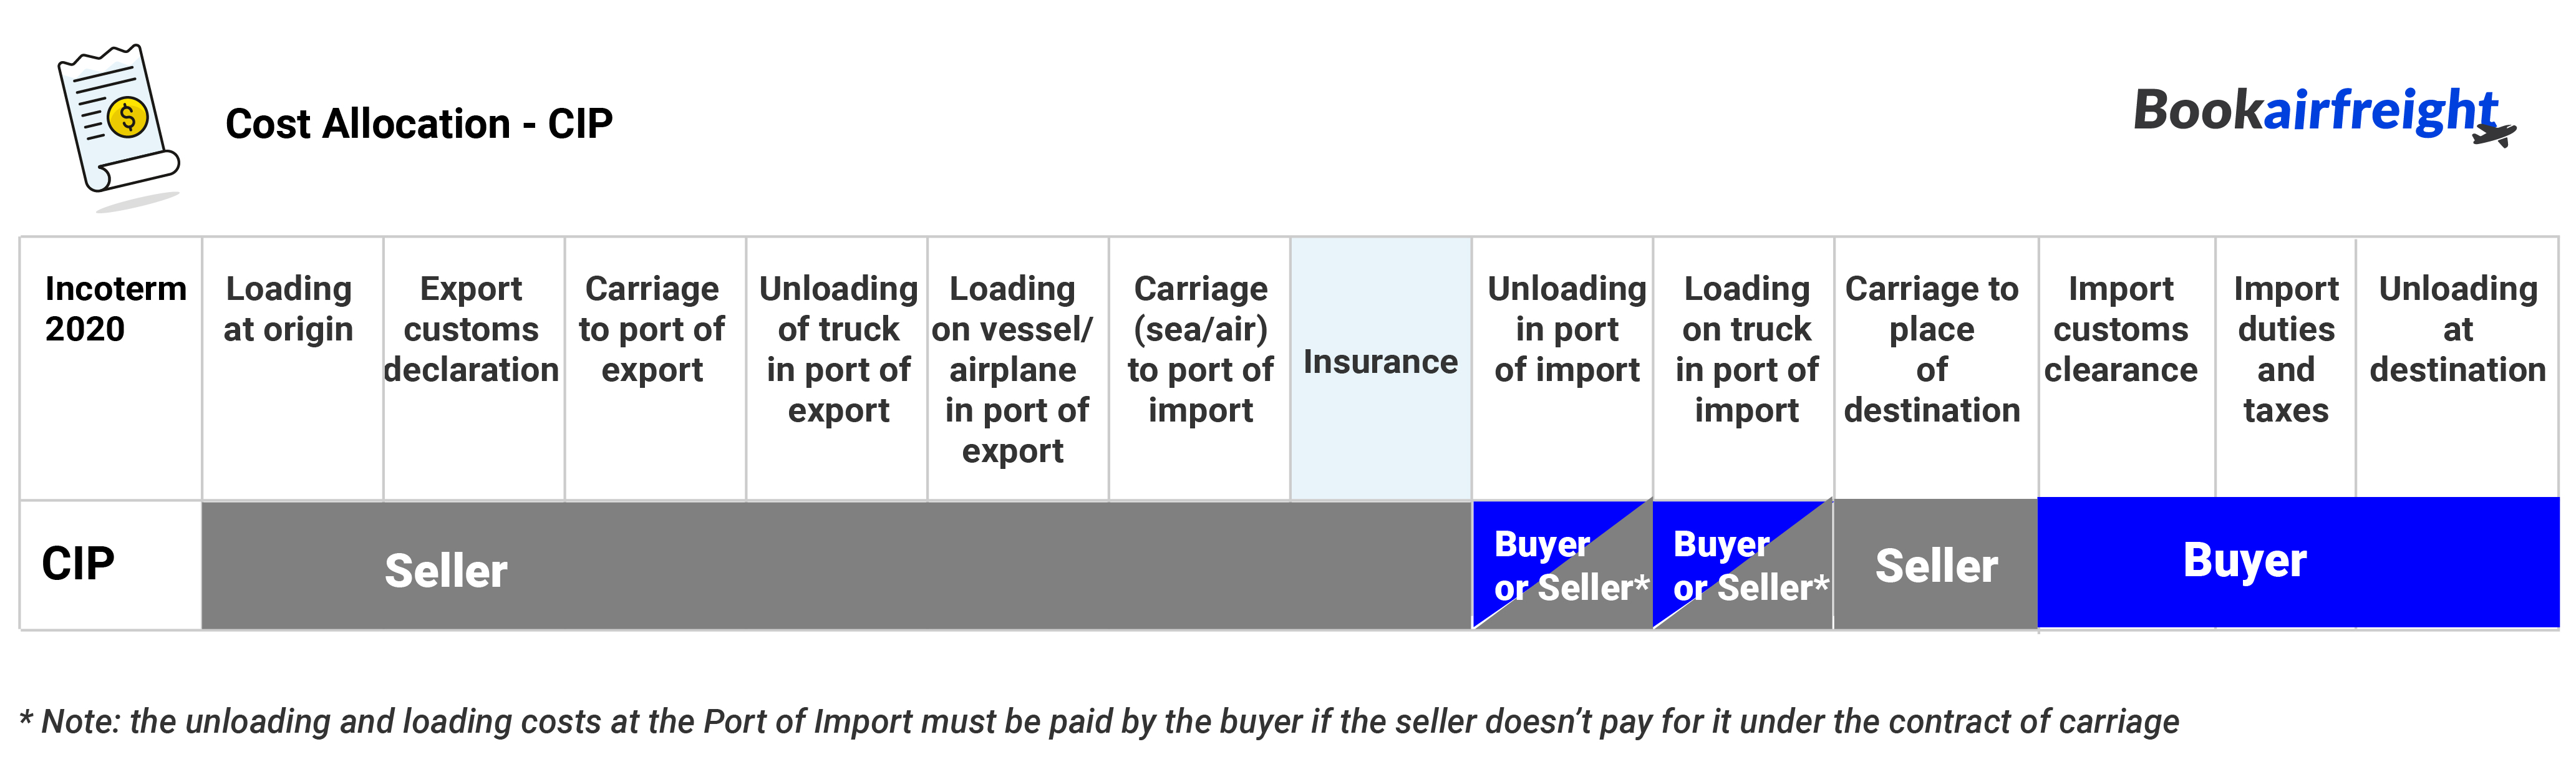 Cost allocation - who should pay what under CIP